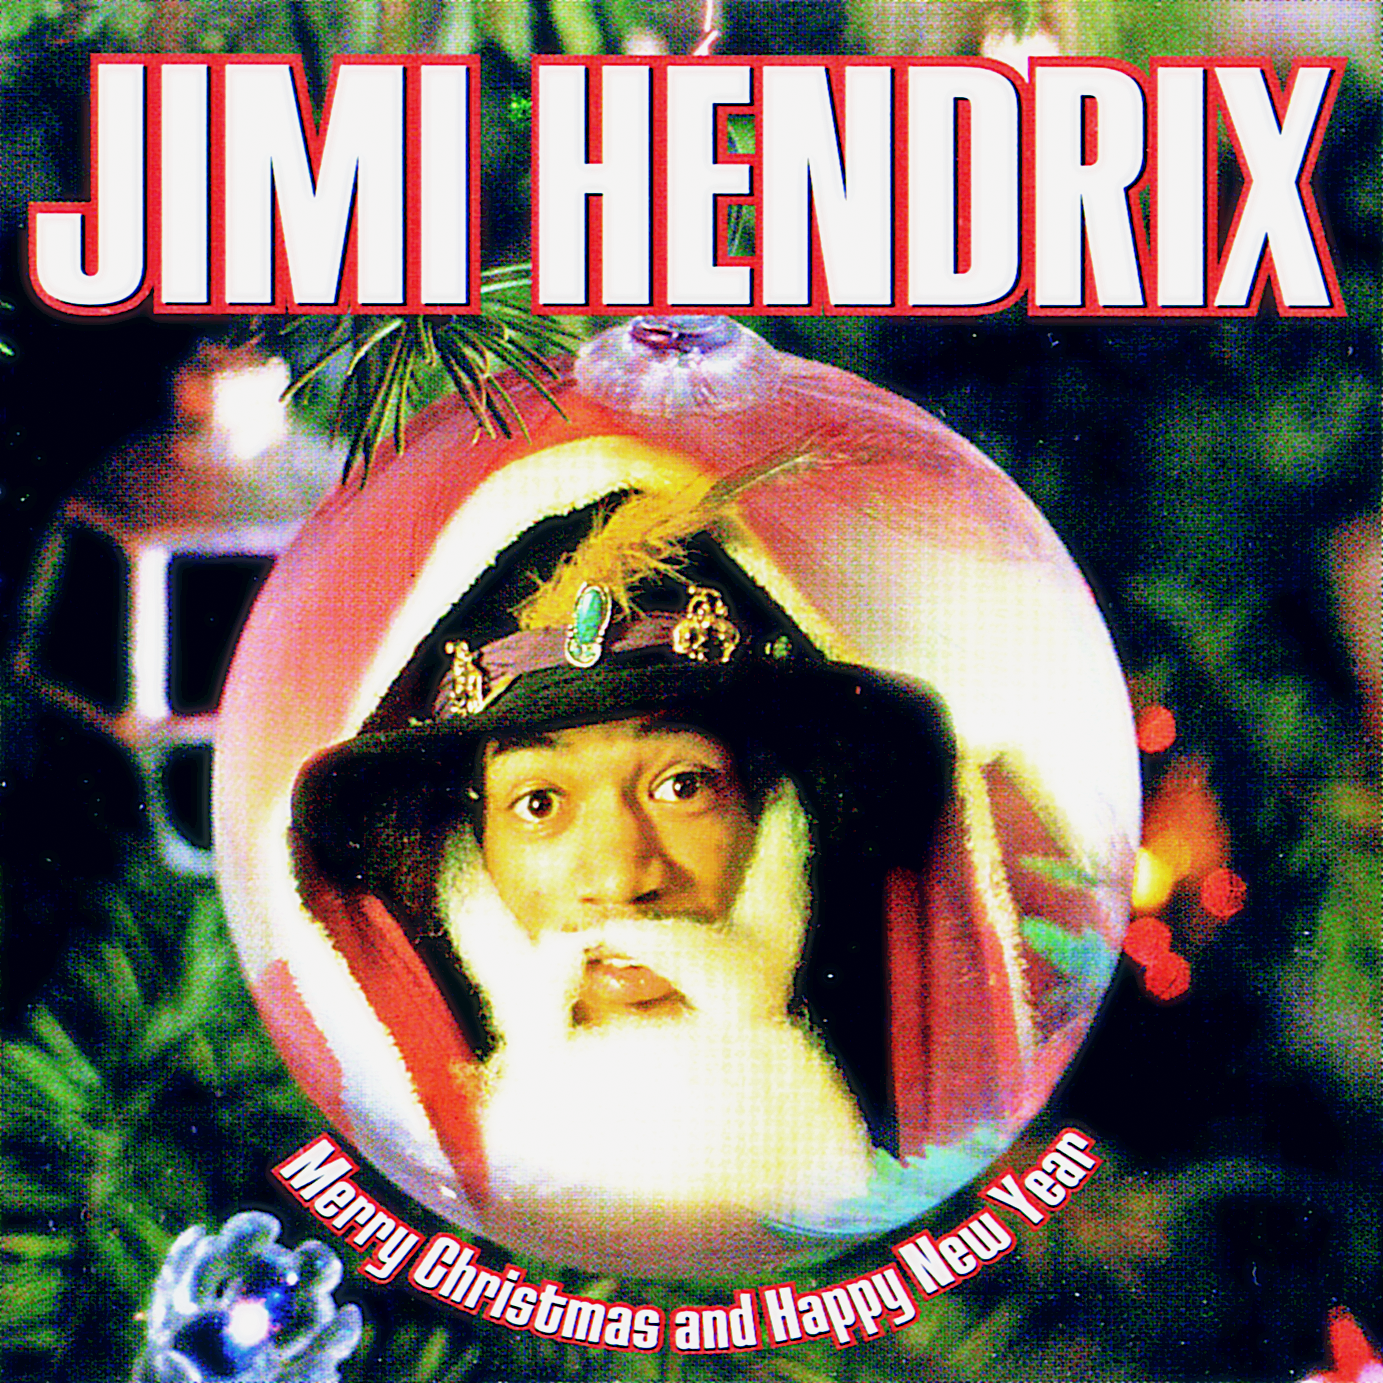 jimi hendrix merry christmas and happy new year album cover